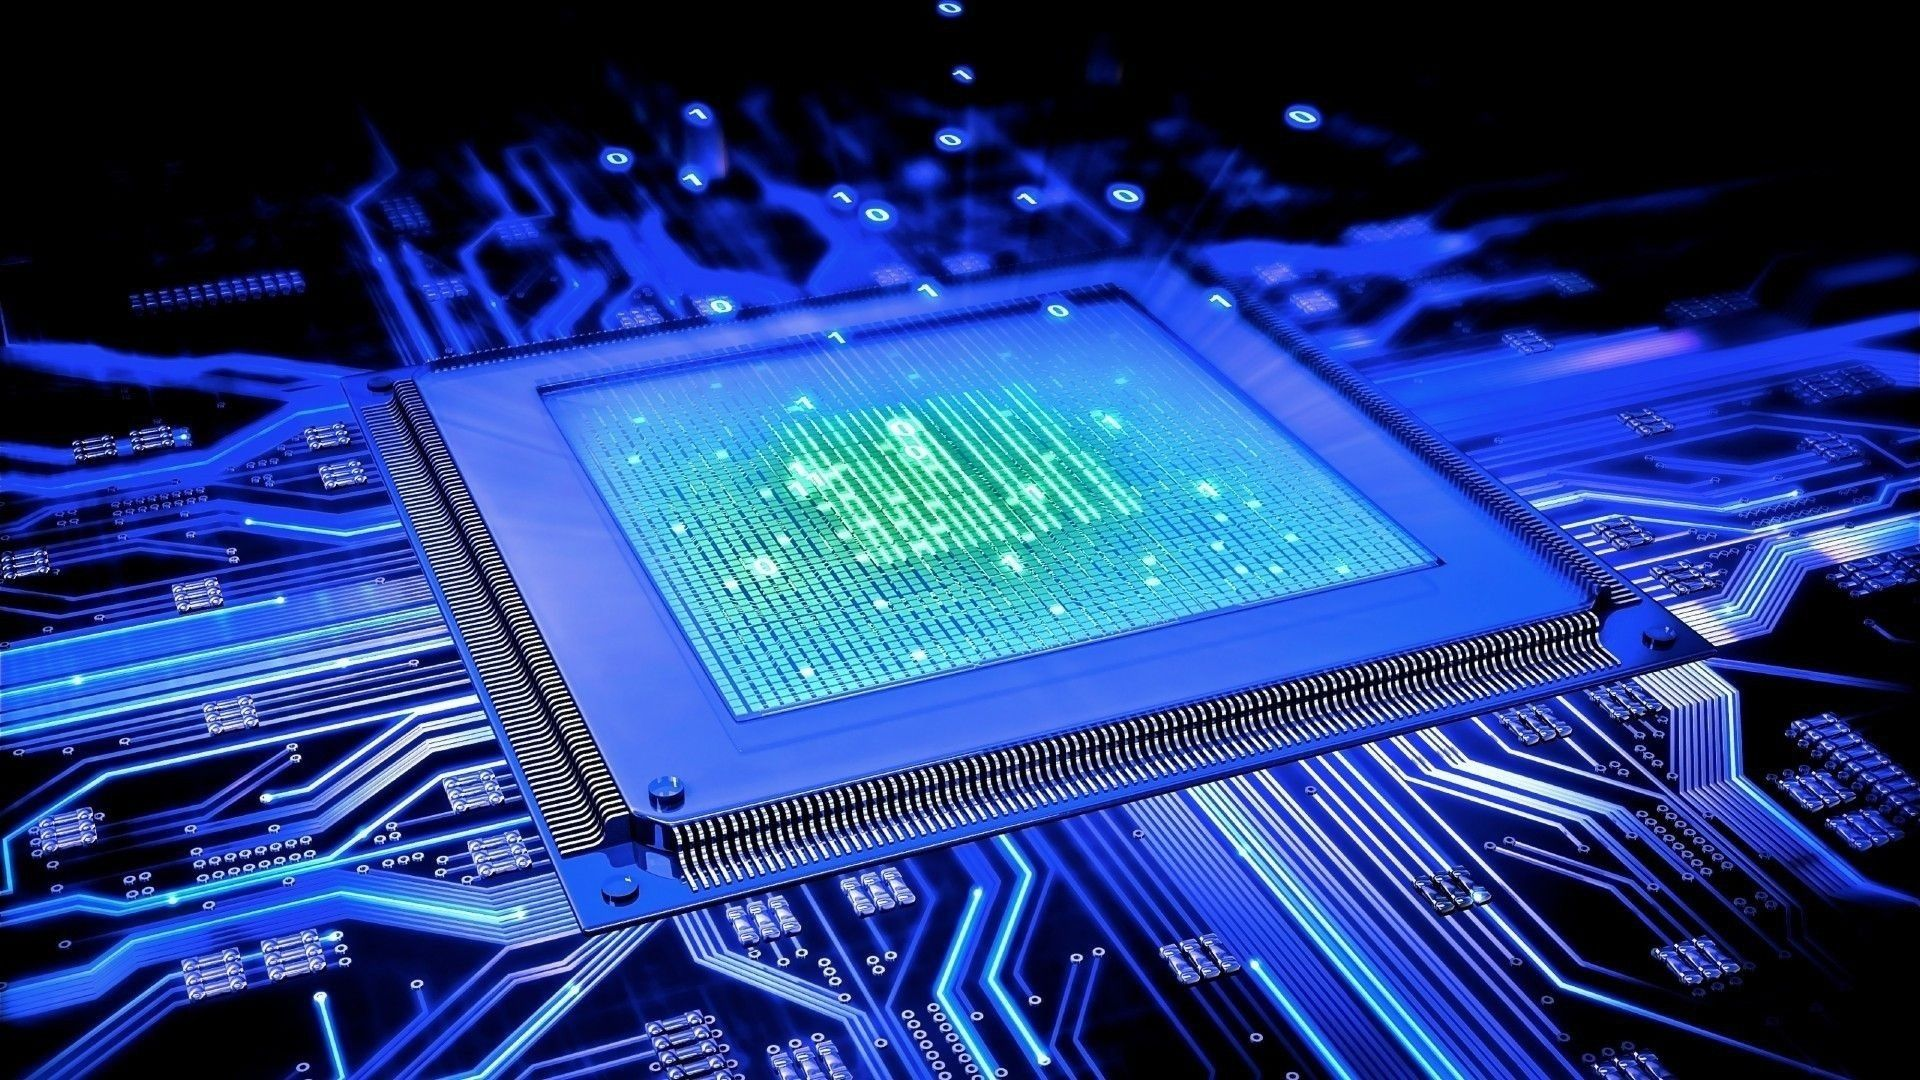 Computer Science Pictures Technology Wallpaper Computer Wallpaper Hd Computer Science